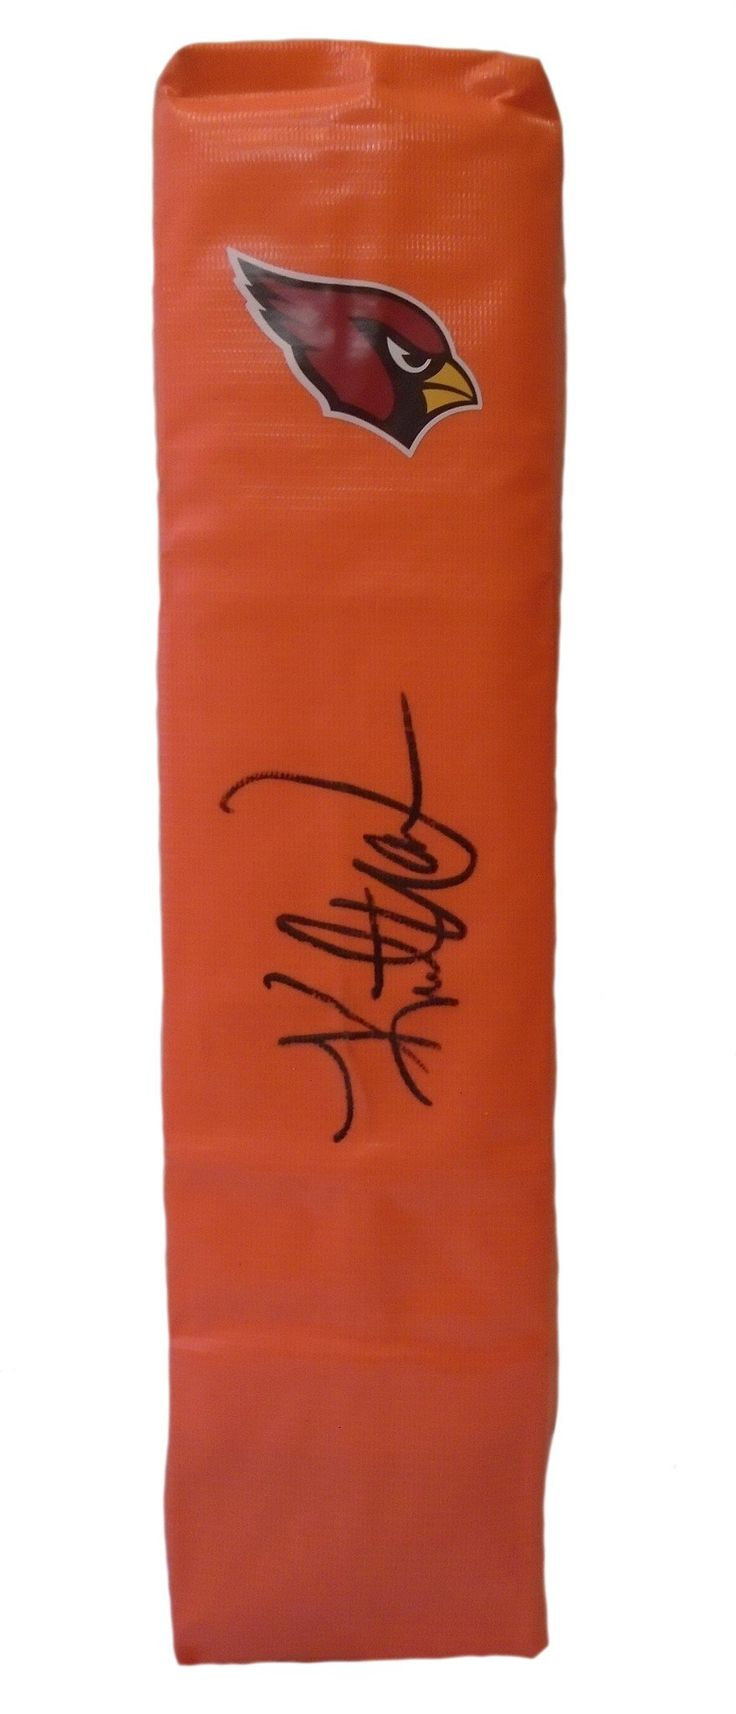 Kurt Warner Autographed Arizona Cardinals Full Size Football End Zone Touchdown Pylon. This is a brand-new custom Kurt Warner signed Arizona Cardinals logo full size football end zone pylon.  This pylon measures 4 inches (Width)  X 4 inches (Length) X 18 inches (Height).  Kurt signed the pylon in black sharpie. Check out the photo of Kurt signing for us. ** Proof photo is included for free with purchase. Please click on images to enlarge. Please browse our website for additional NFL & NCAA…